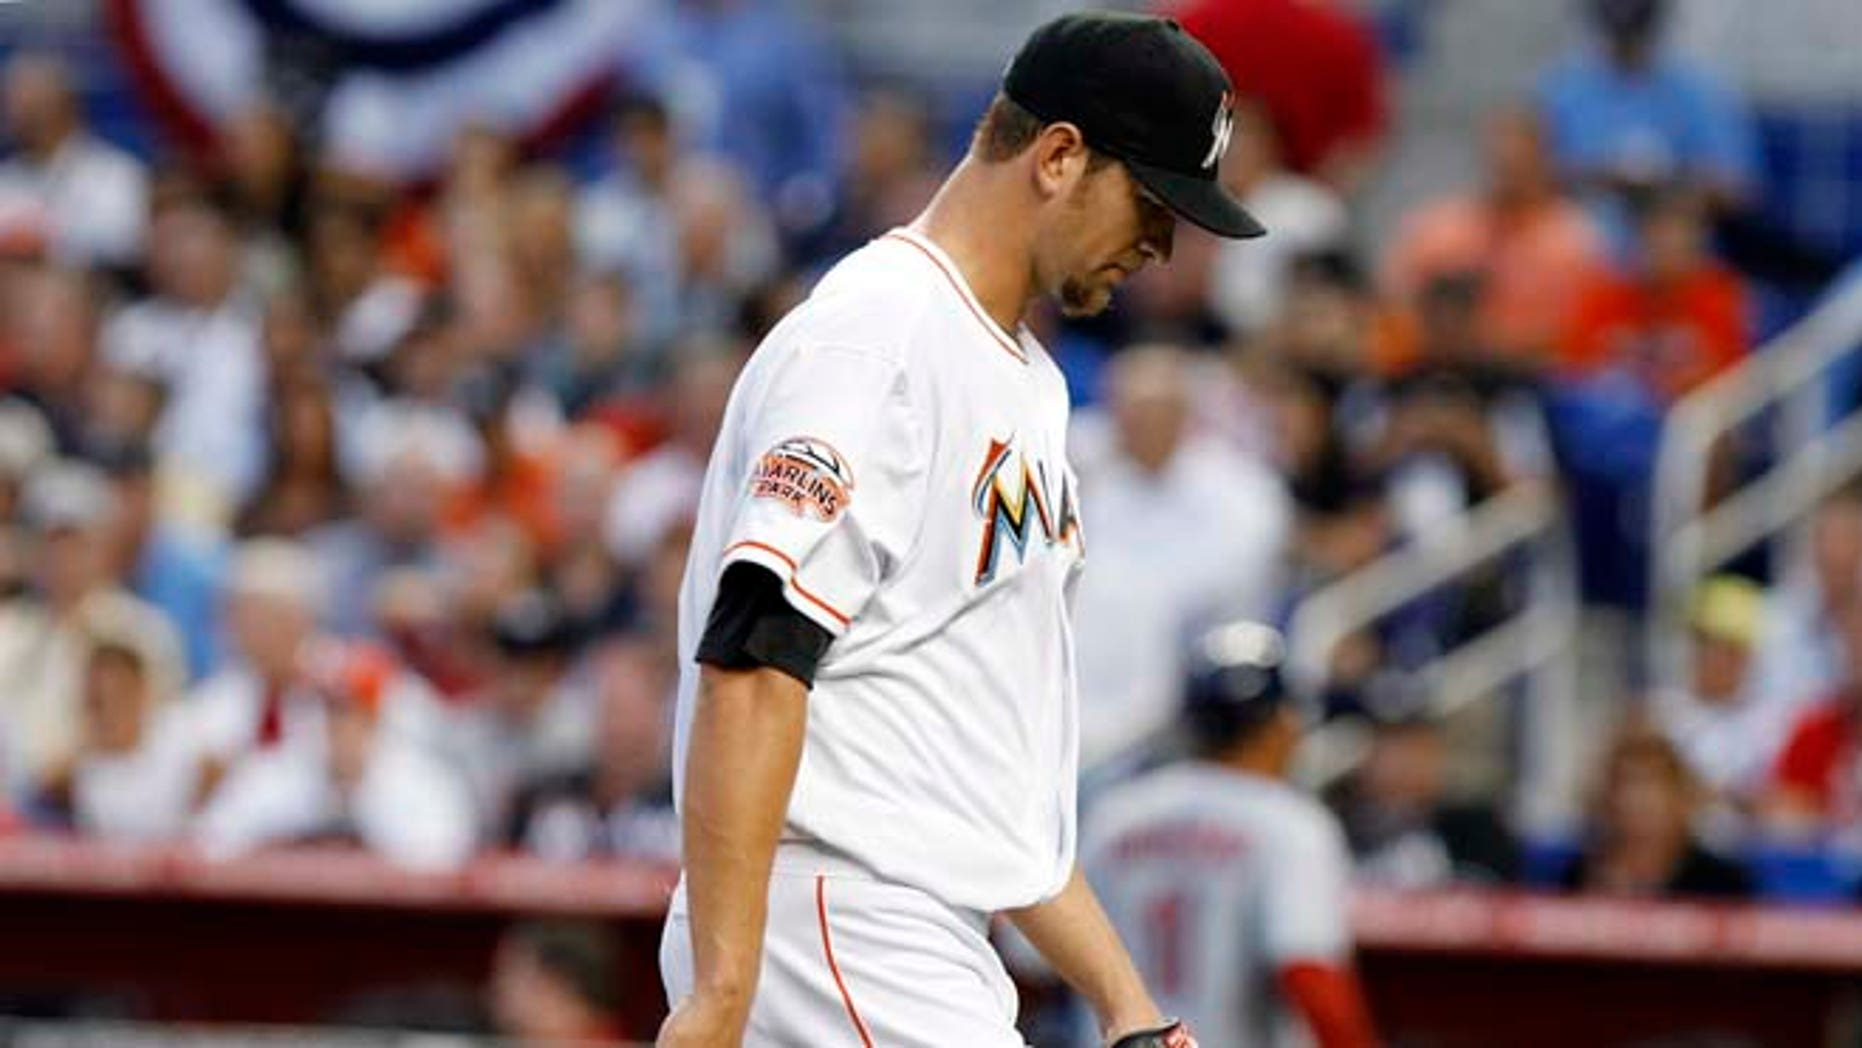 Miami Marlins starting pitcher Josh Johnson walks back to the dugout after giving up two runs to the St. Louis Cardinals in the first inning of the Opening Day baseball game, Wednesday, April 4, 2012, in Miami.